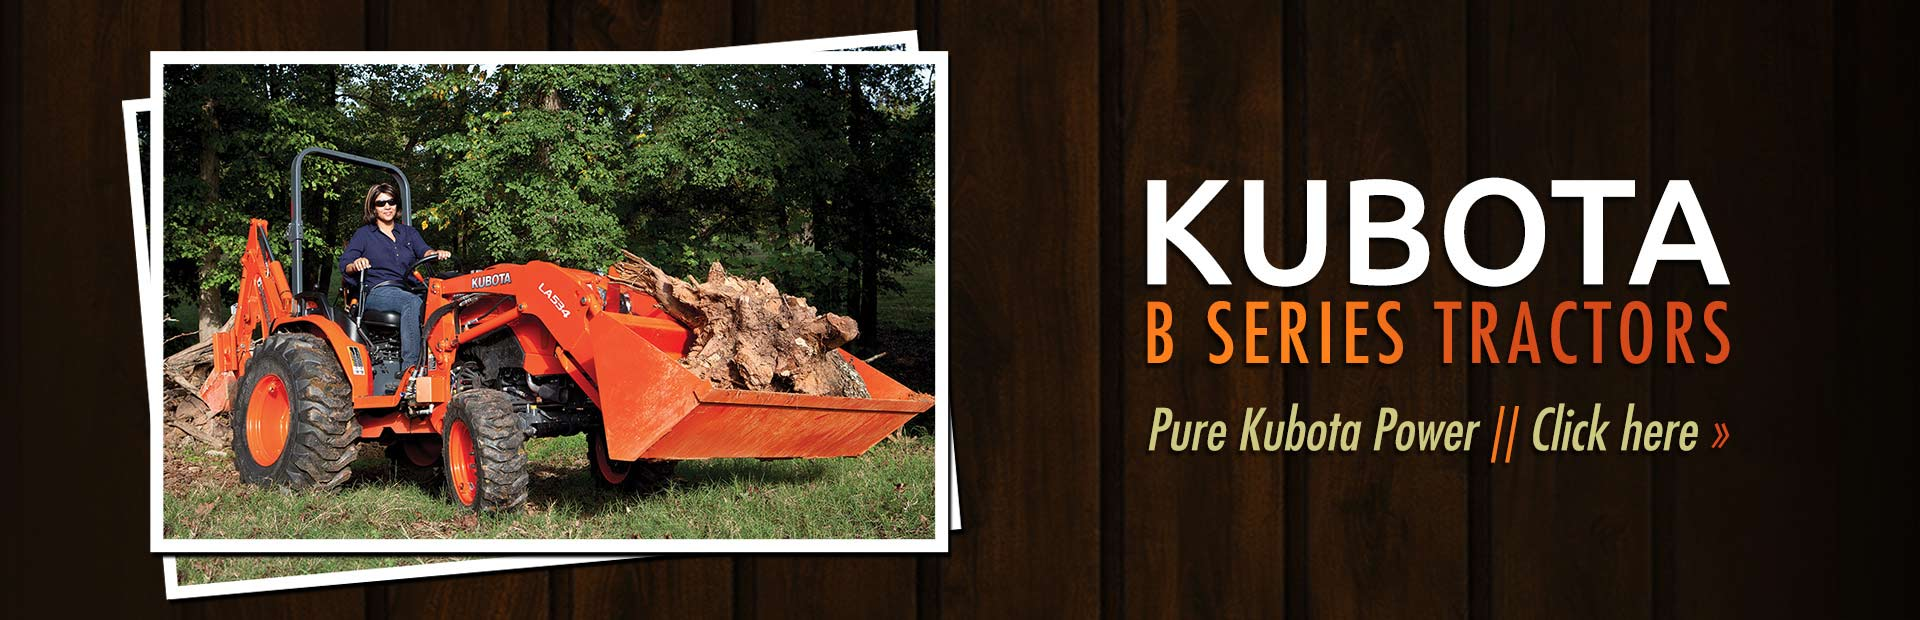 Click here to view our selection of Kubota B series tractors!